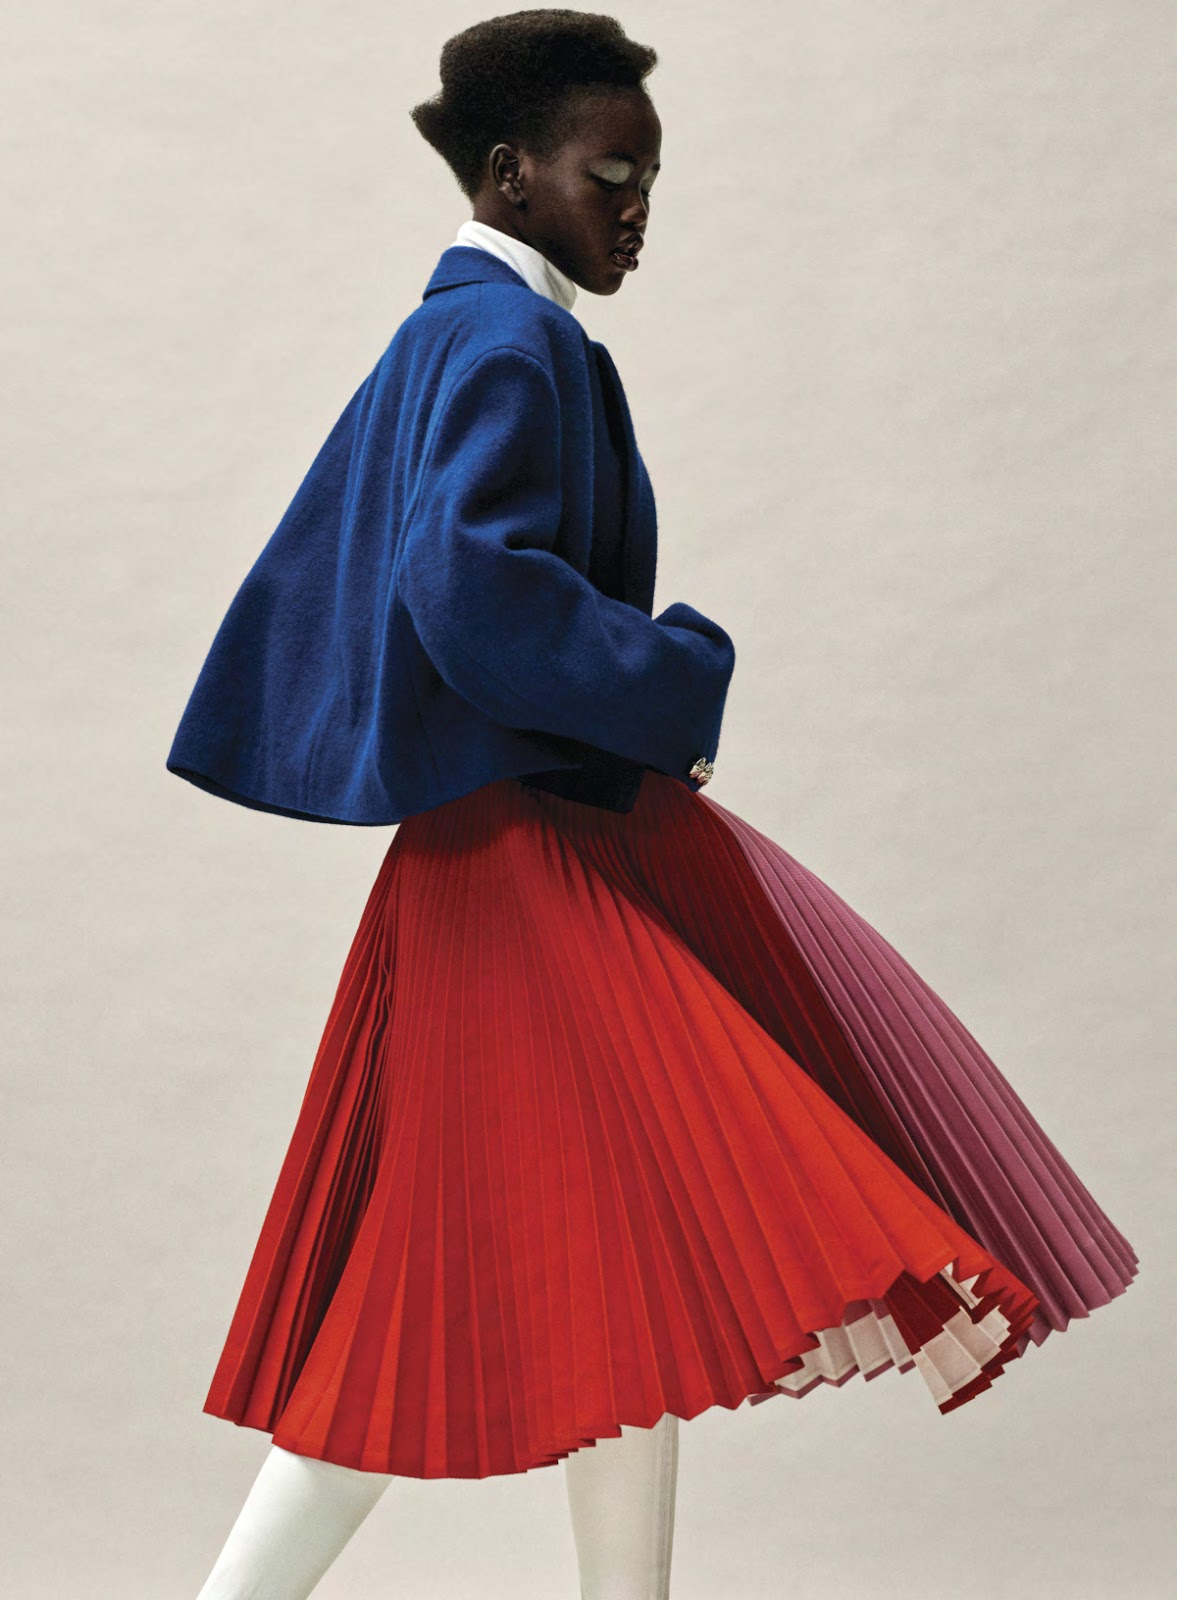 Adut Akech by Josh Olins for Vogue US January 2019 (7).jpg